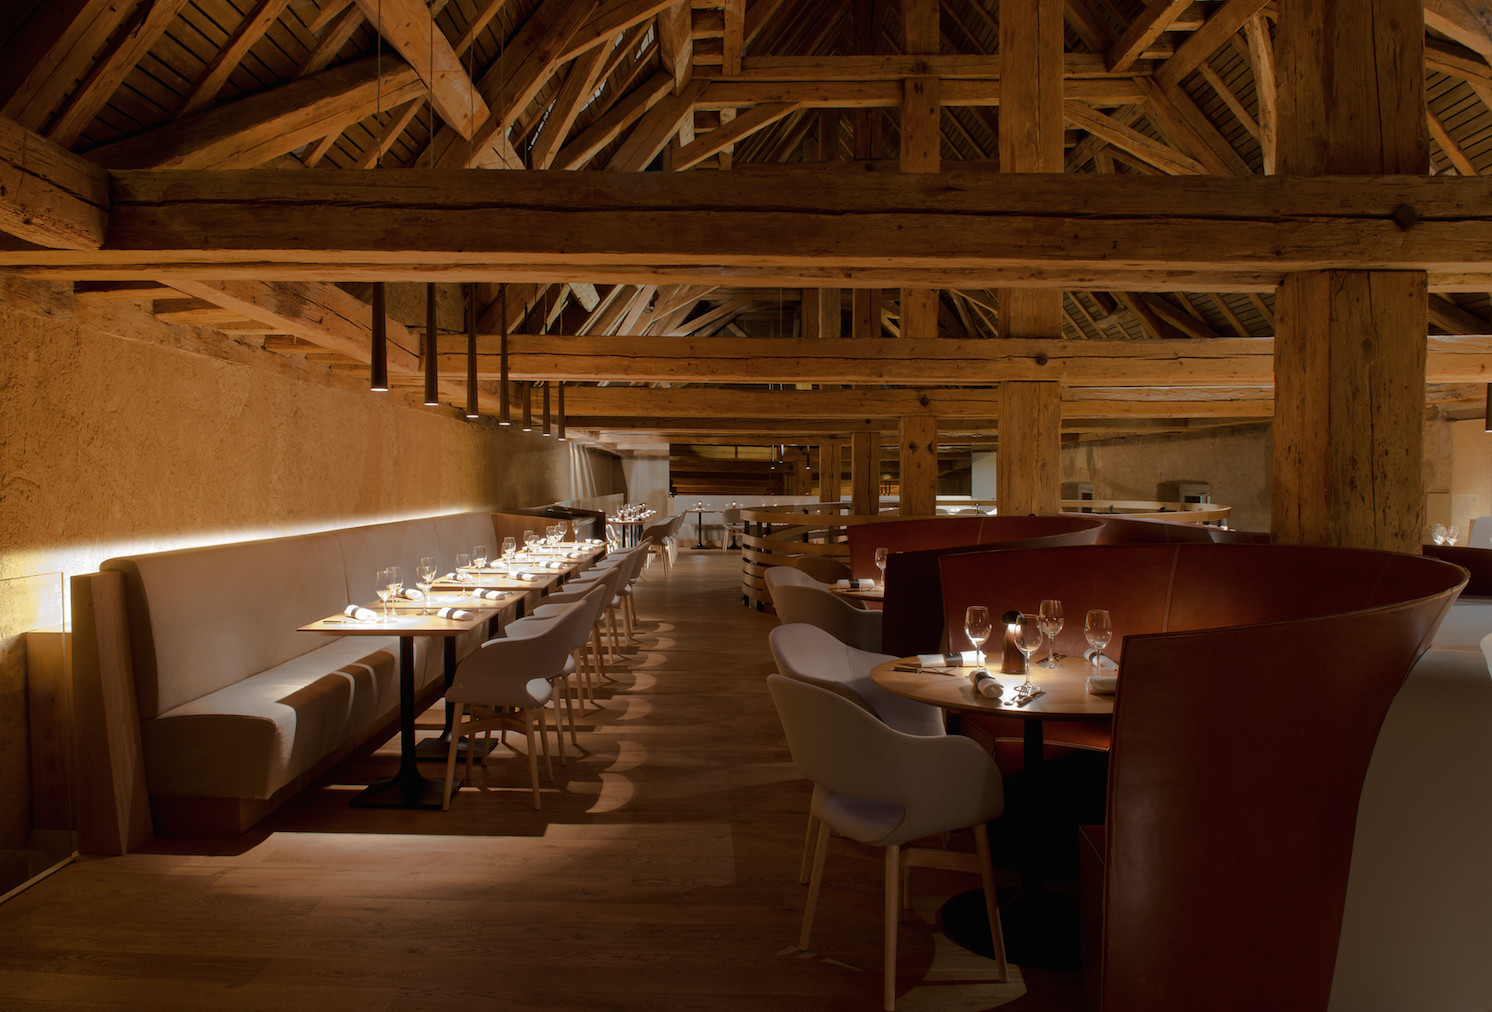 2014 Restaurant  Bar Design Award Winners  ArchDaily